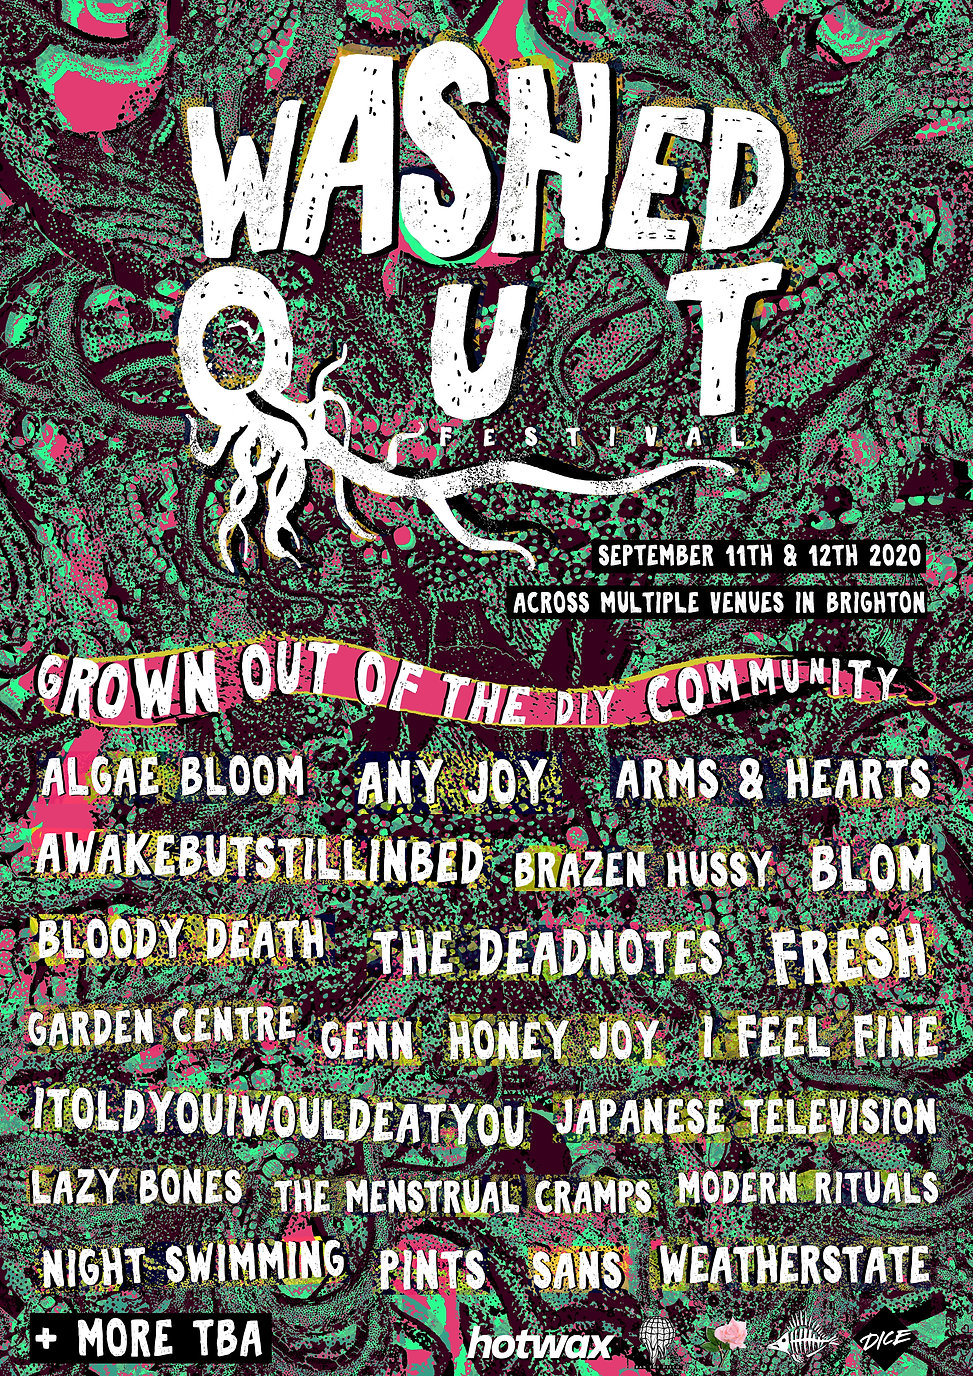 Flyer Design for Washed Out Festival based in Brighton